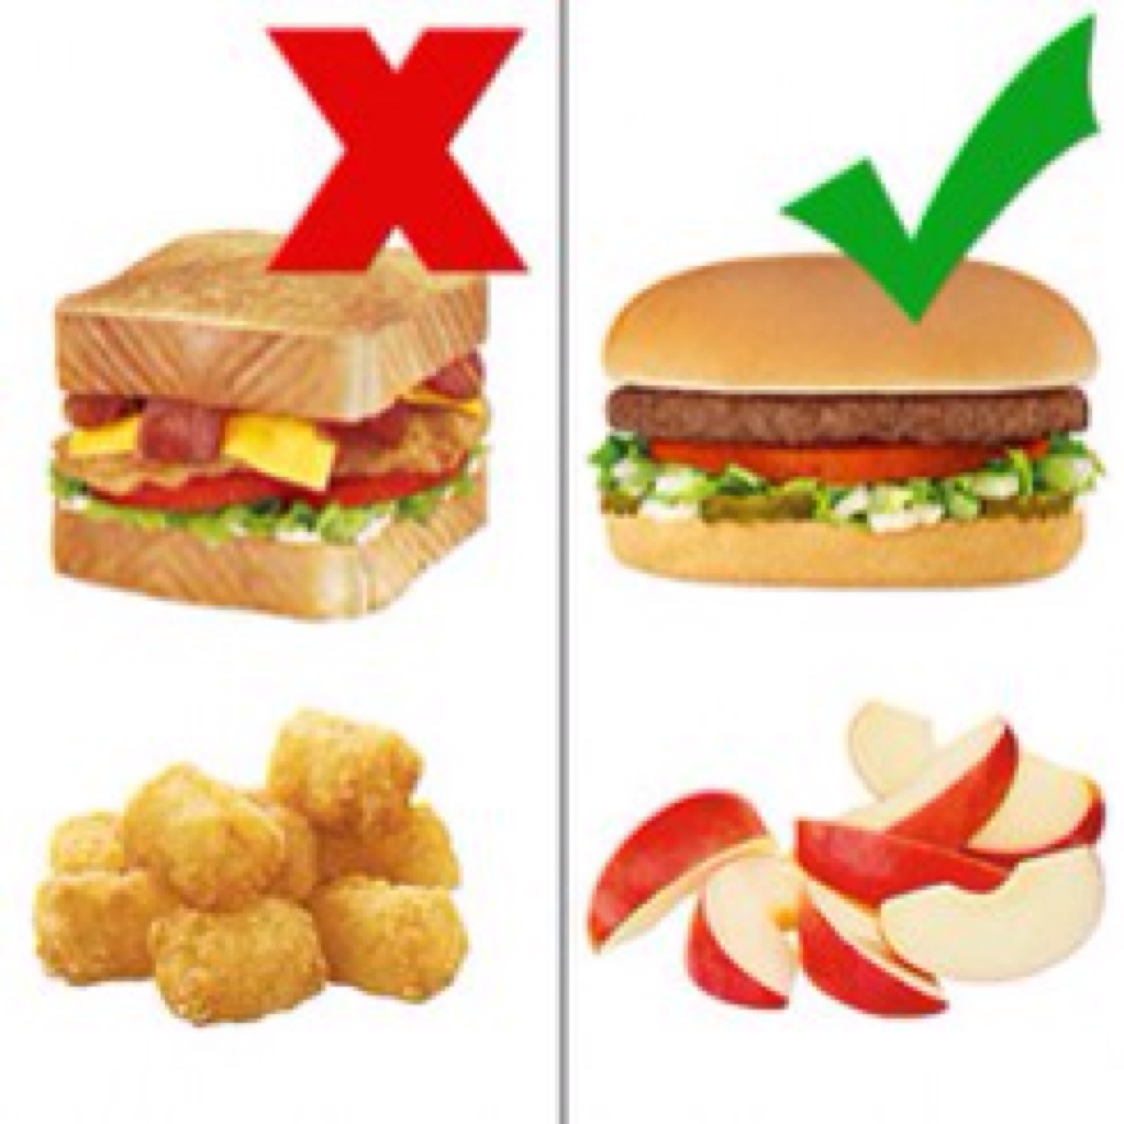 What Is The Healthiest Fast Food